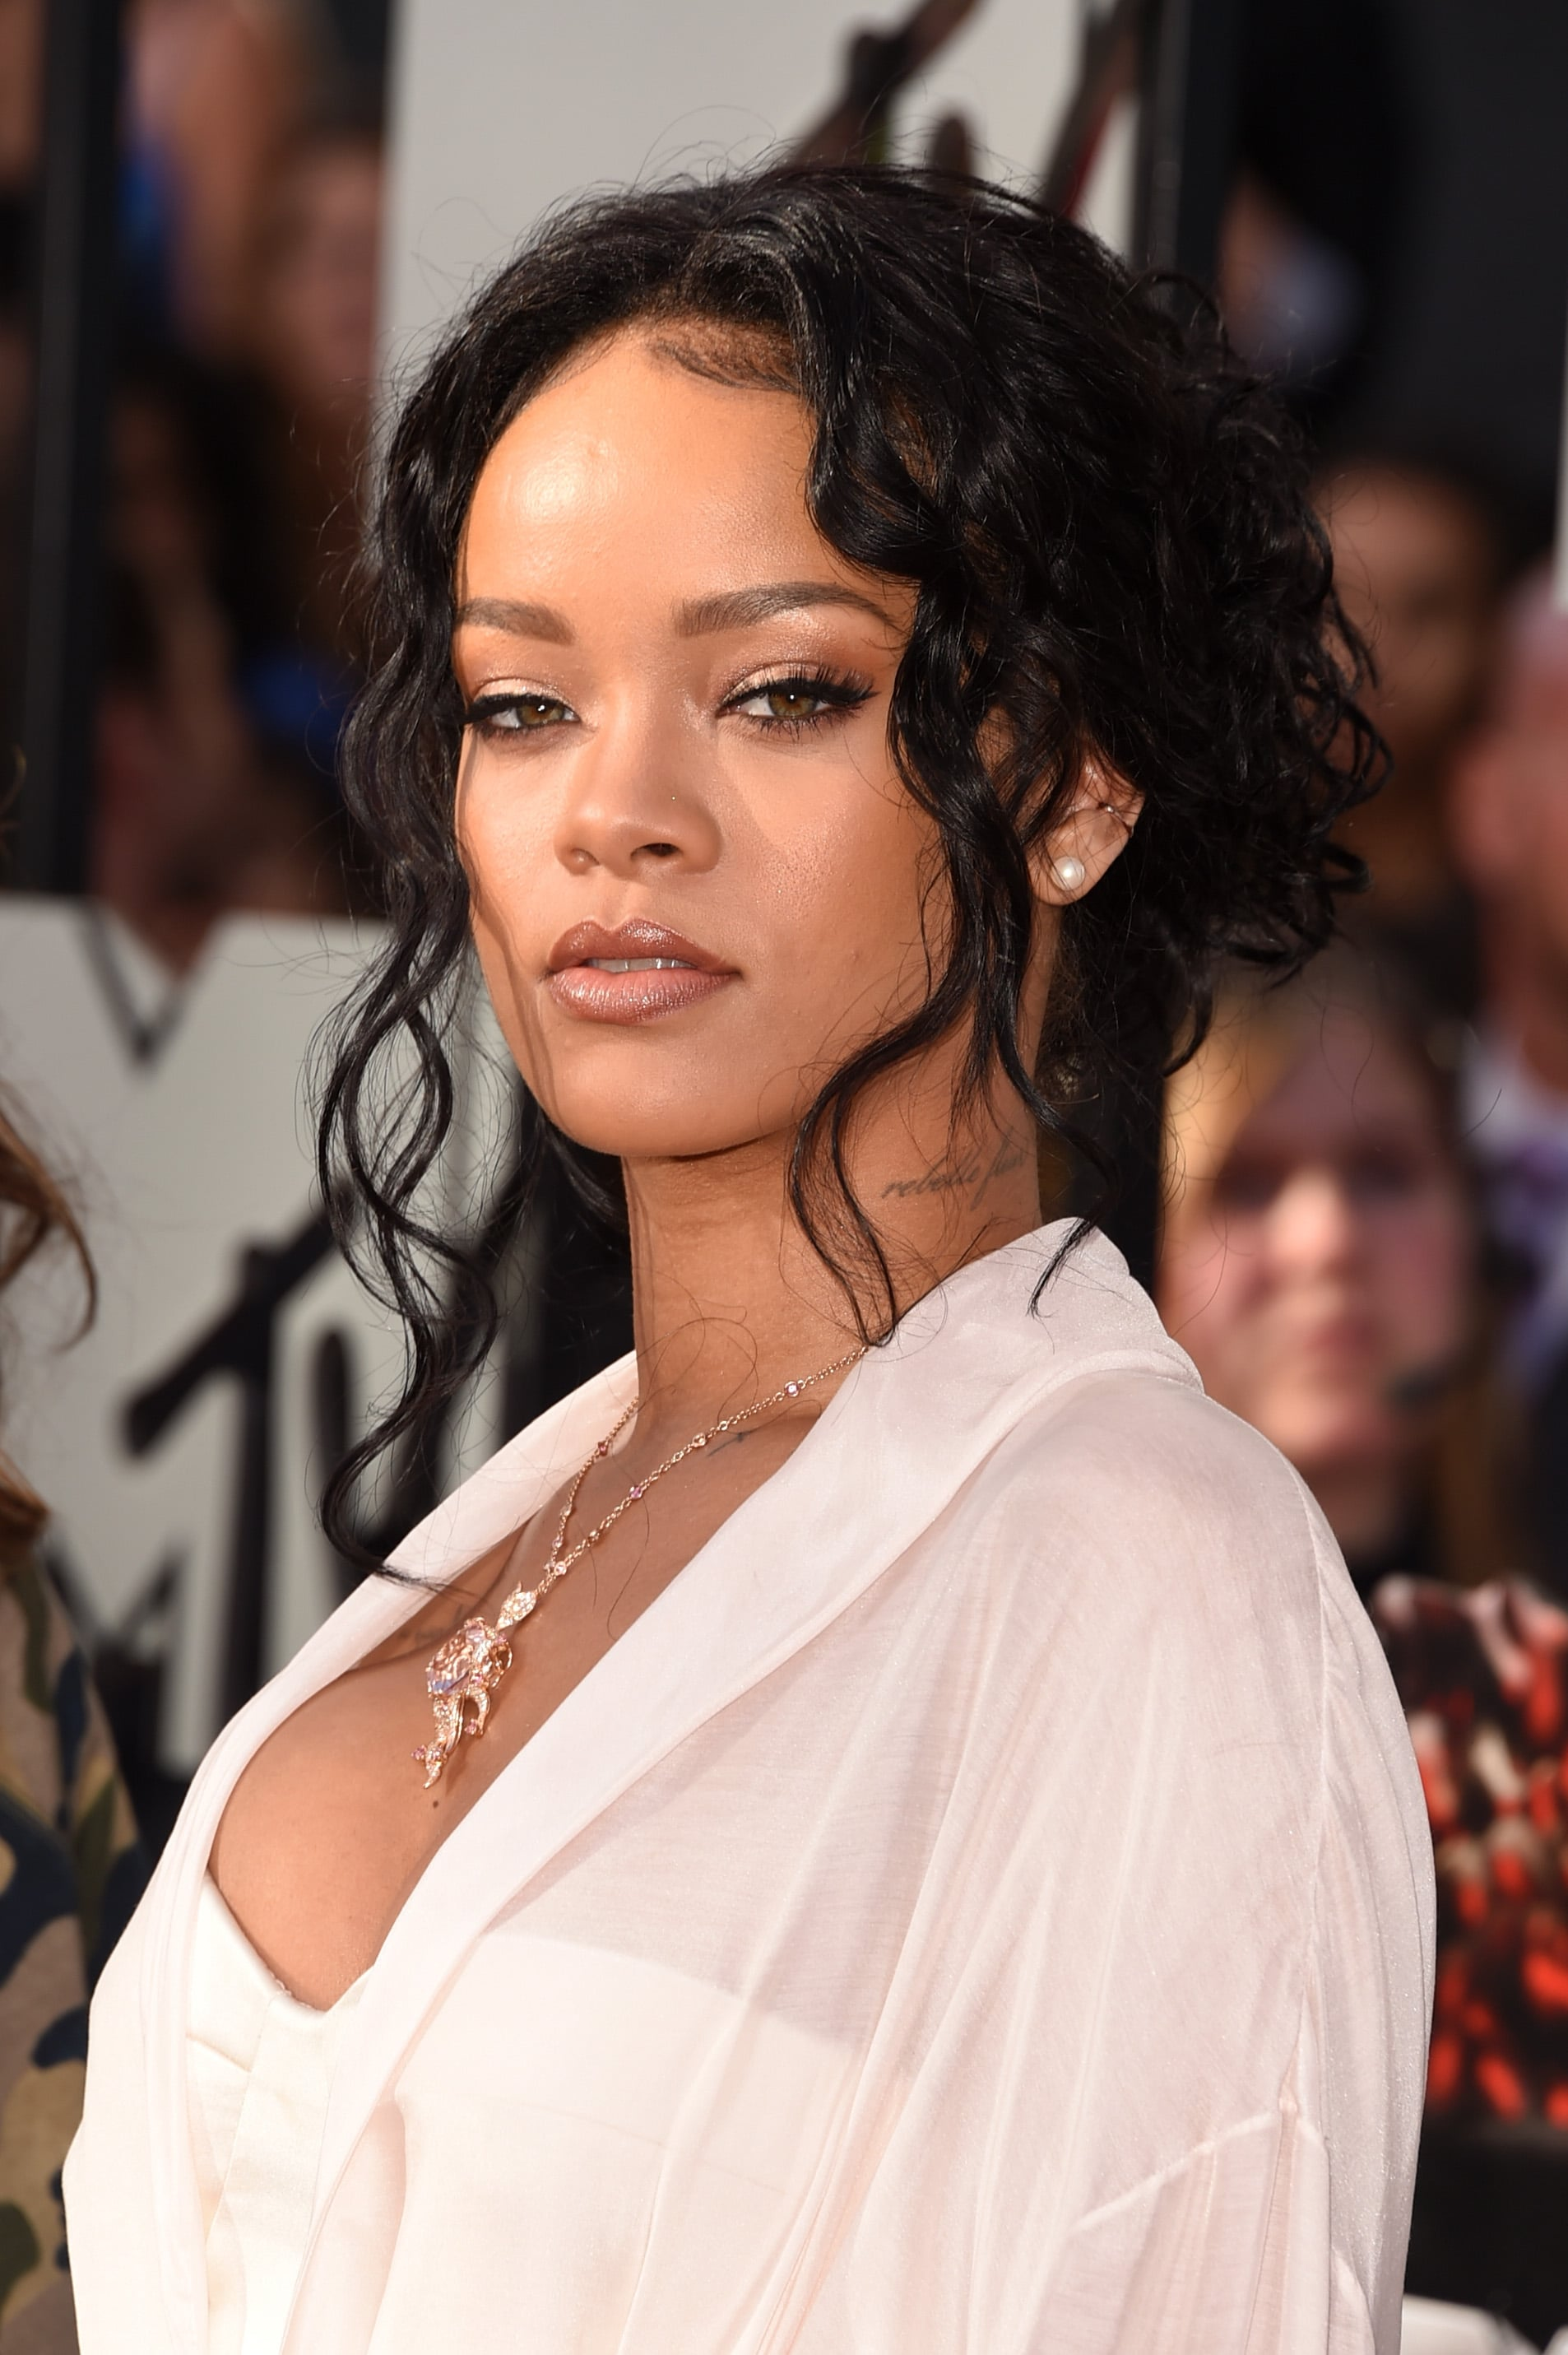 rihanna hair style rihanna s hair and makeup at mtv awards 2014 6140